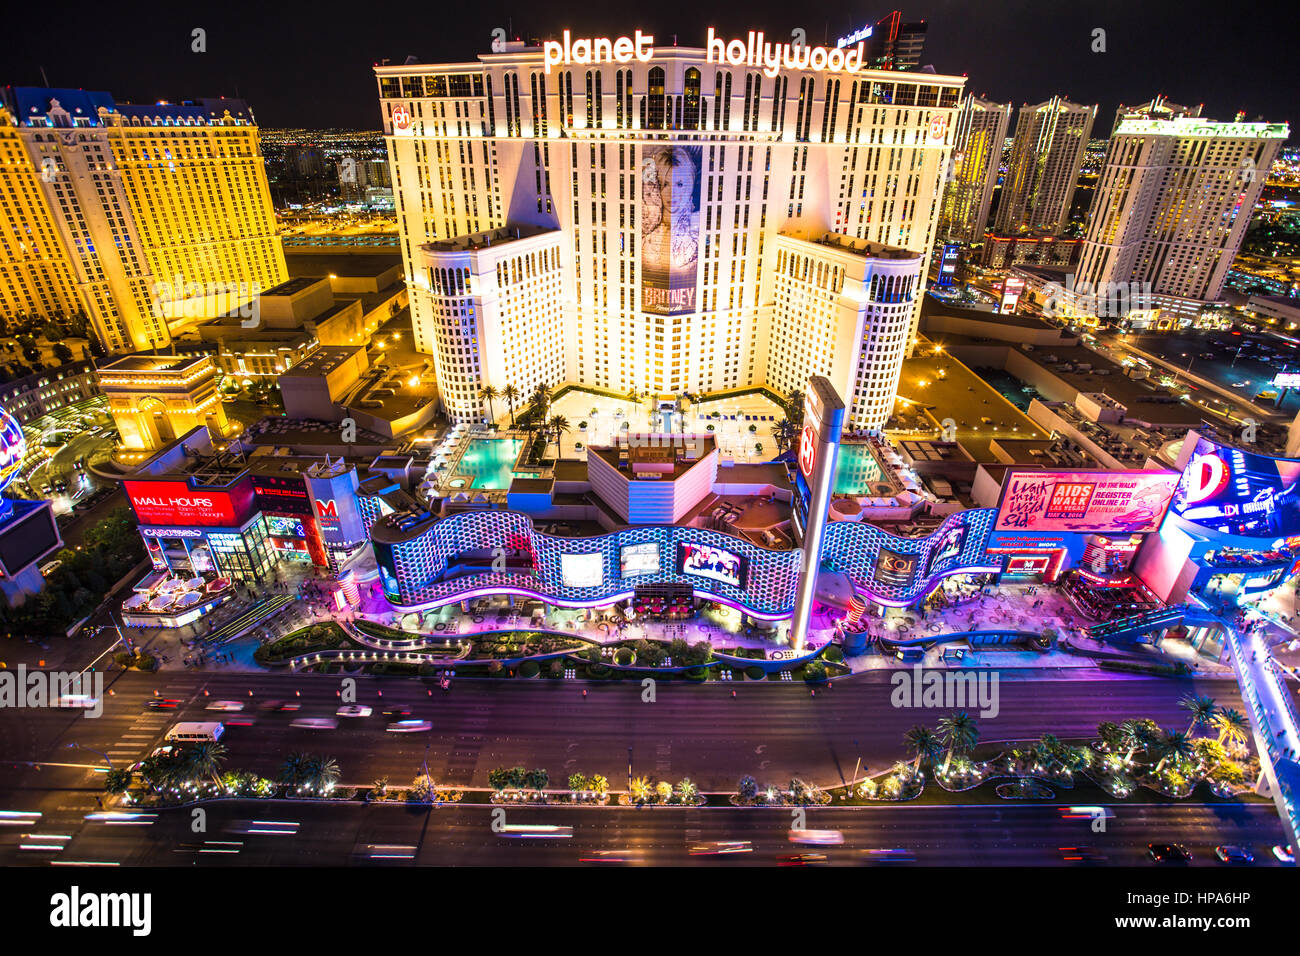 AS VEGAS, NEVADA - MAY 7, 2014: Beautiful night view of Las Vegas strip with colorful resort casinos lit up. - Stock Image